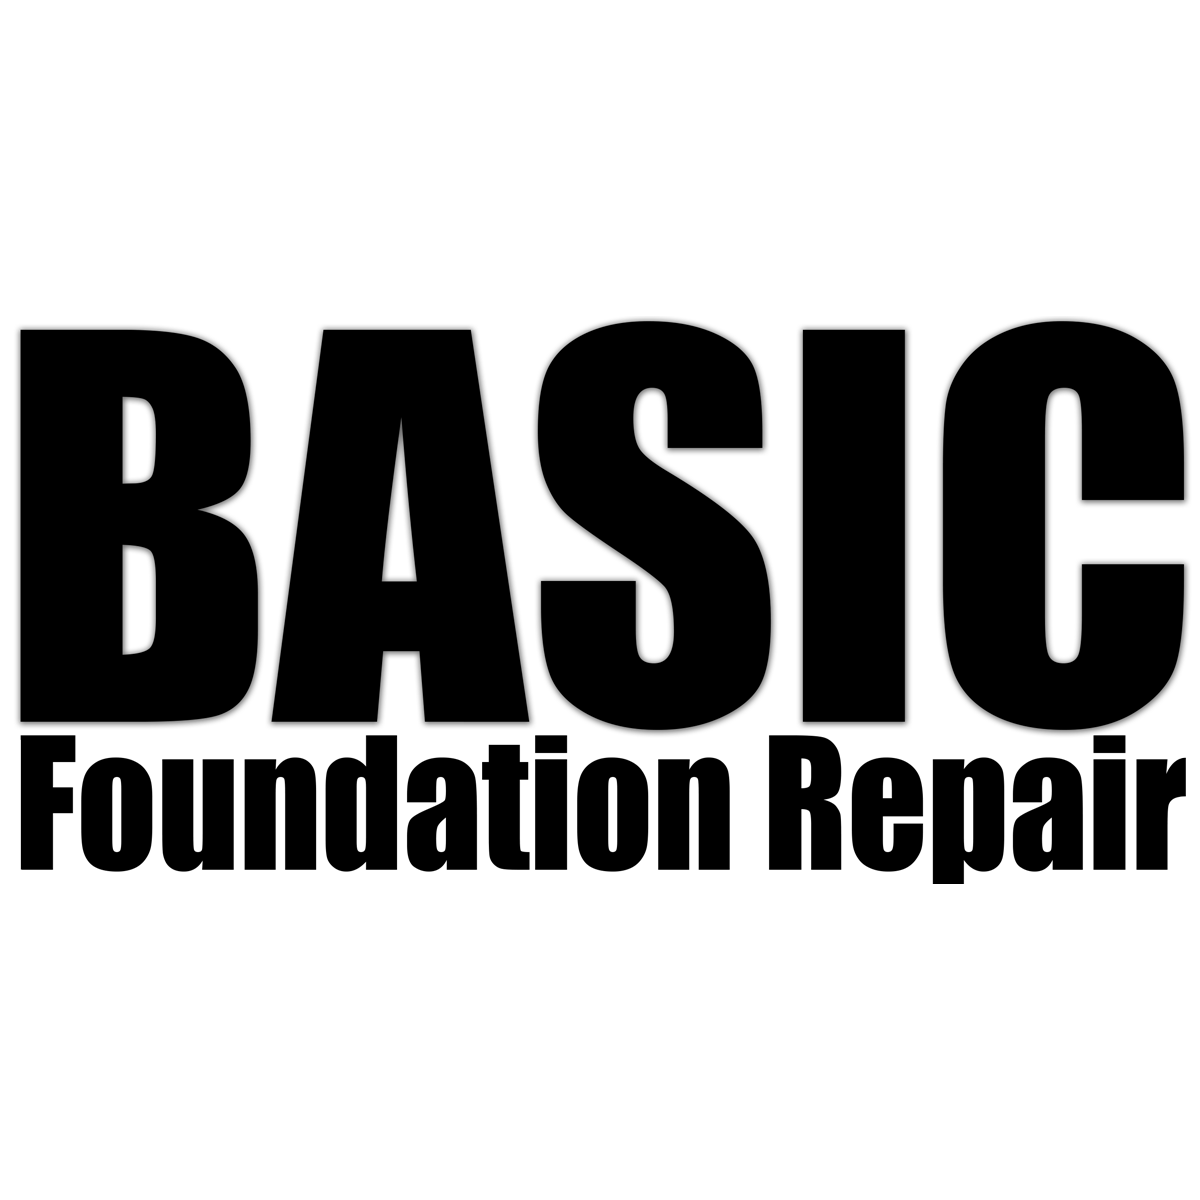 Basic Foundation Repair - Lubbock, TX 79411 - (806)747-6070 | ShowMeLocal.com